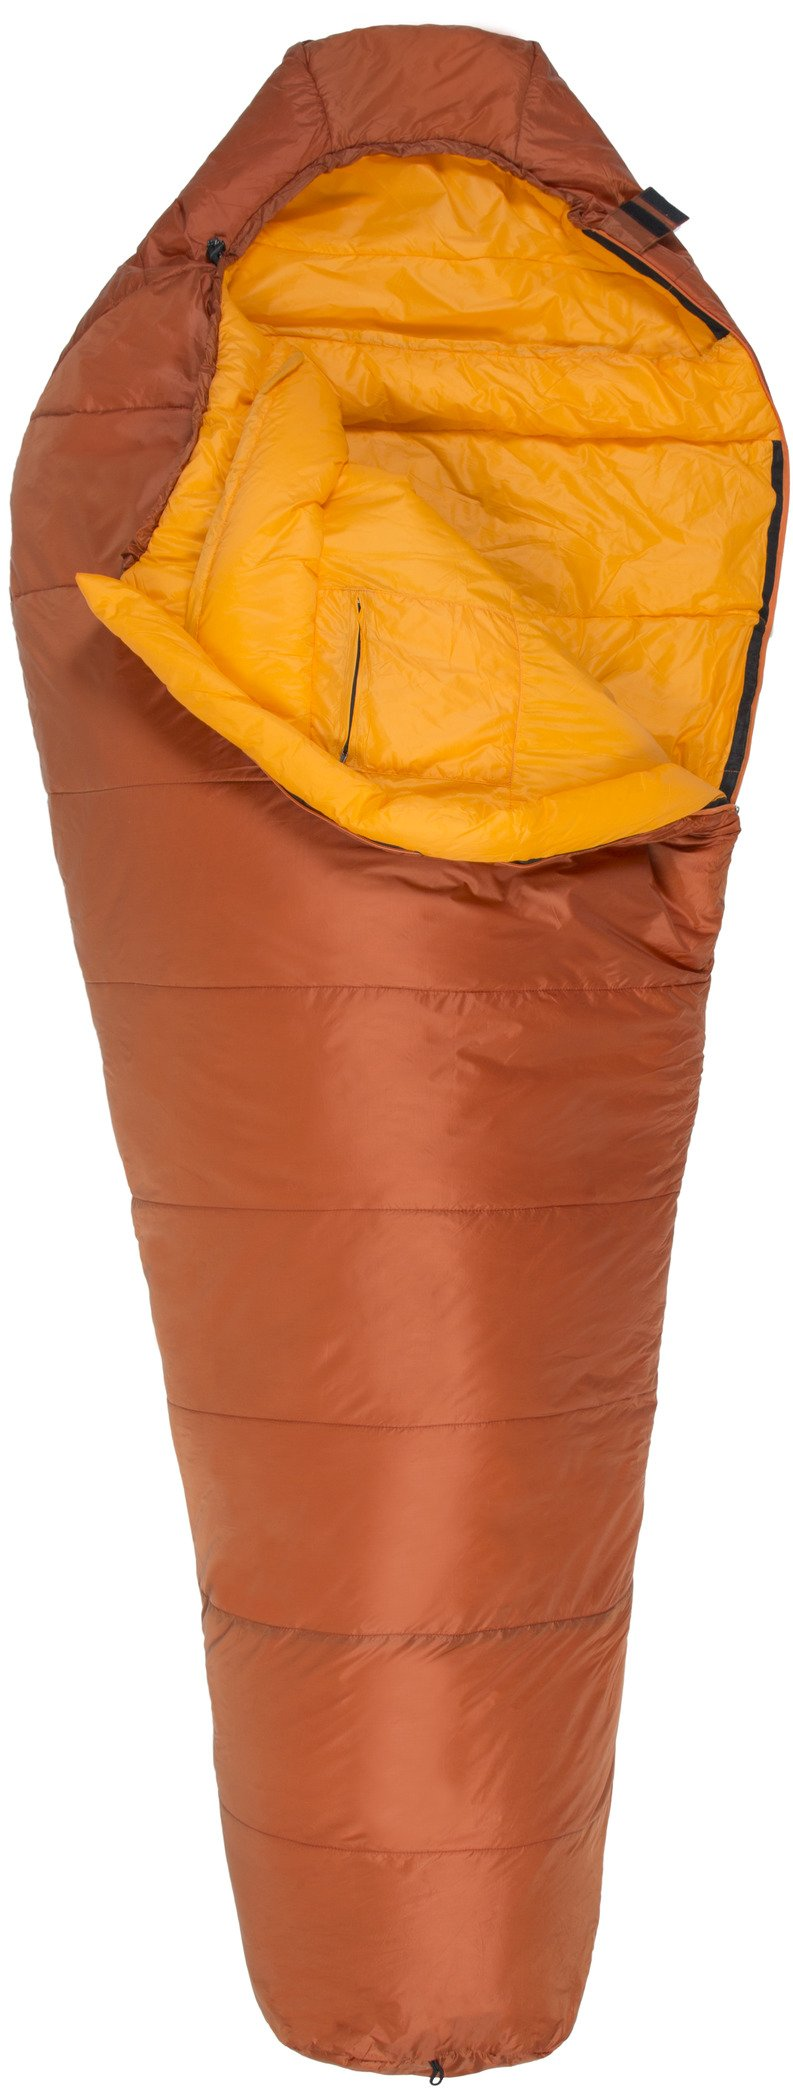 Teton Sports Altos Ultralight Mummy Sleeping Bag Perfect for Camping, Hiking, and Backpacking; Lightweight All-Season Mummy Bag; Compression Sack Included 4